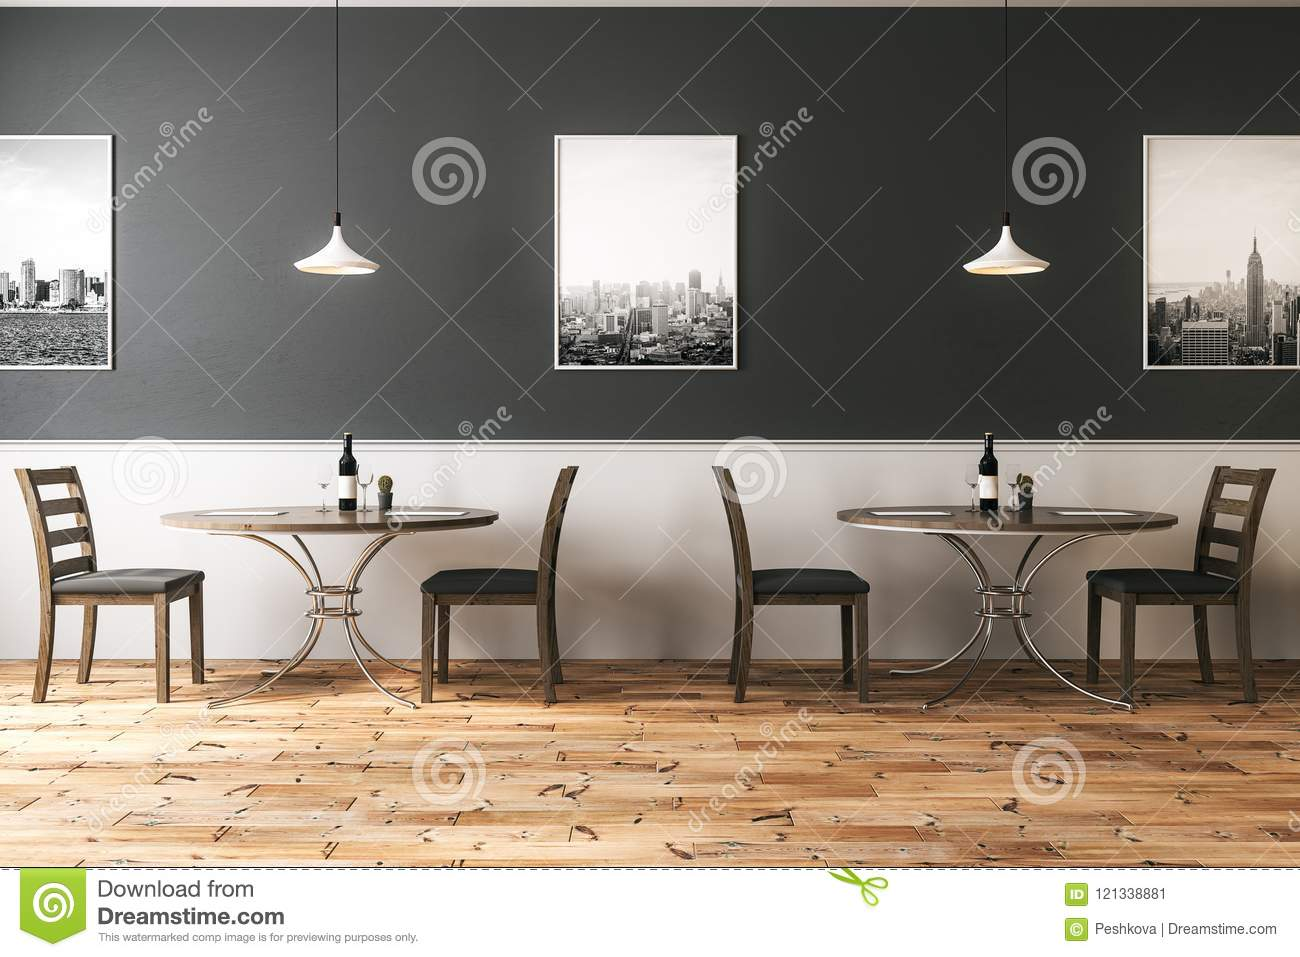 Hipster Cafe With Eco Wooden Furniture Stock Illustration ...